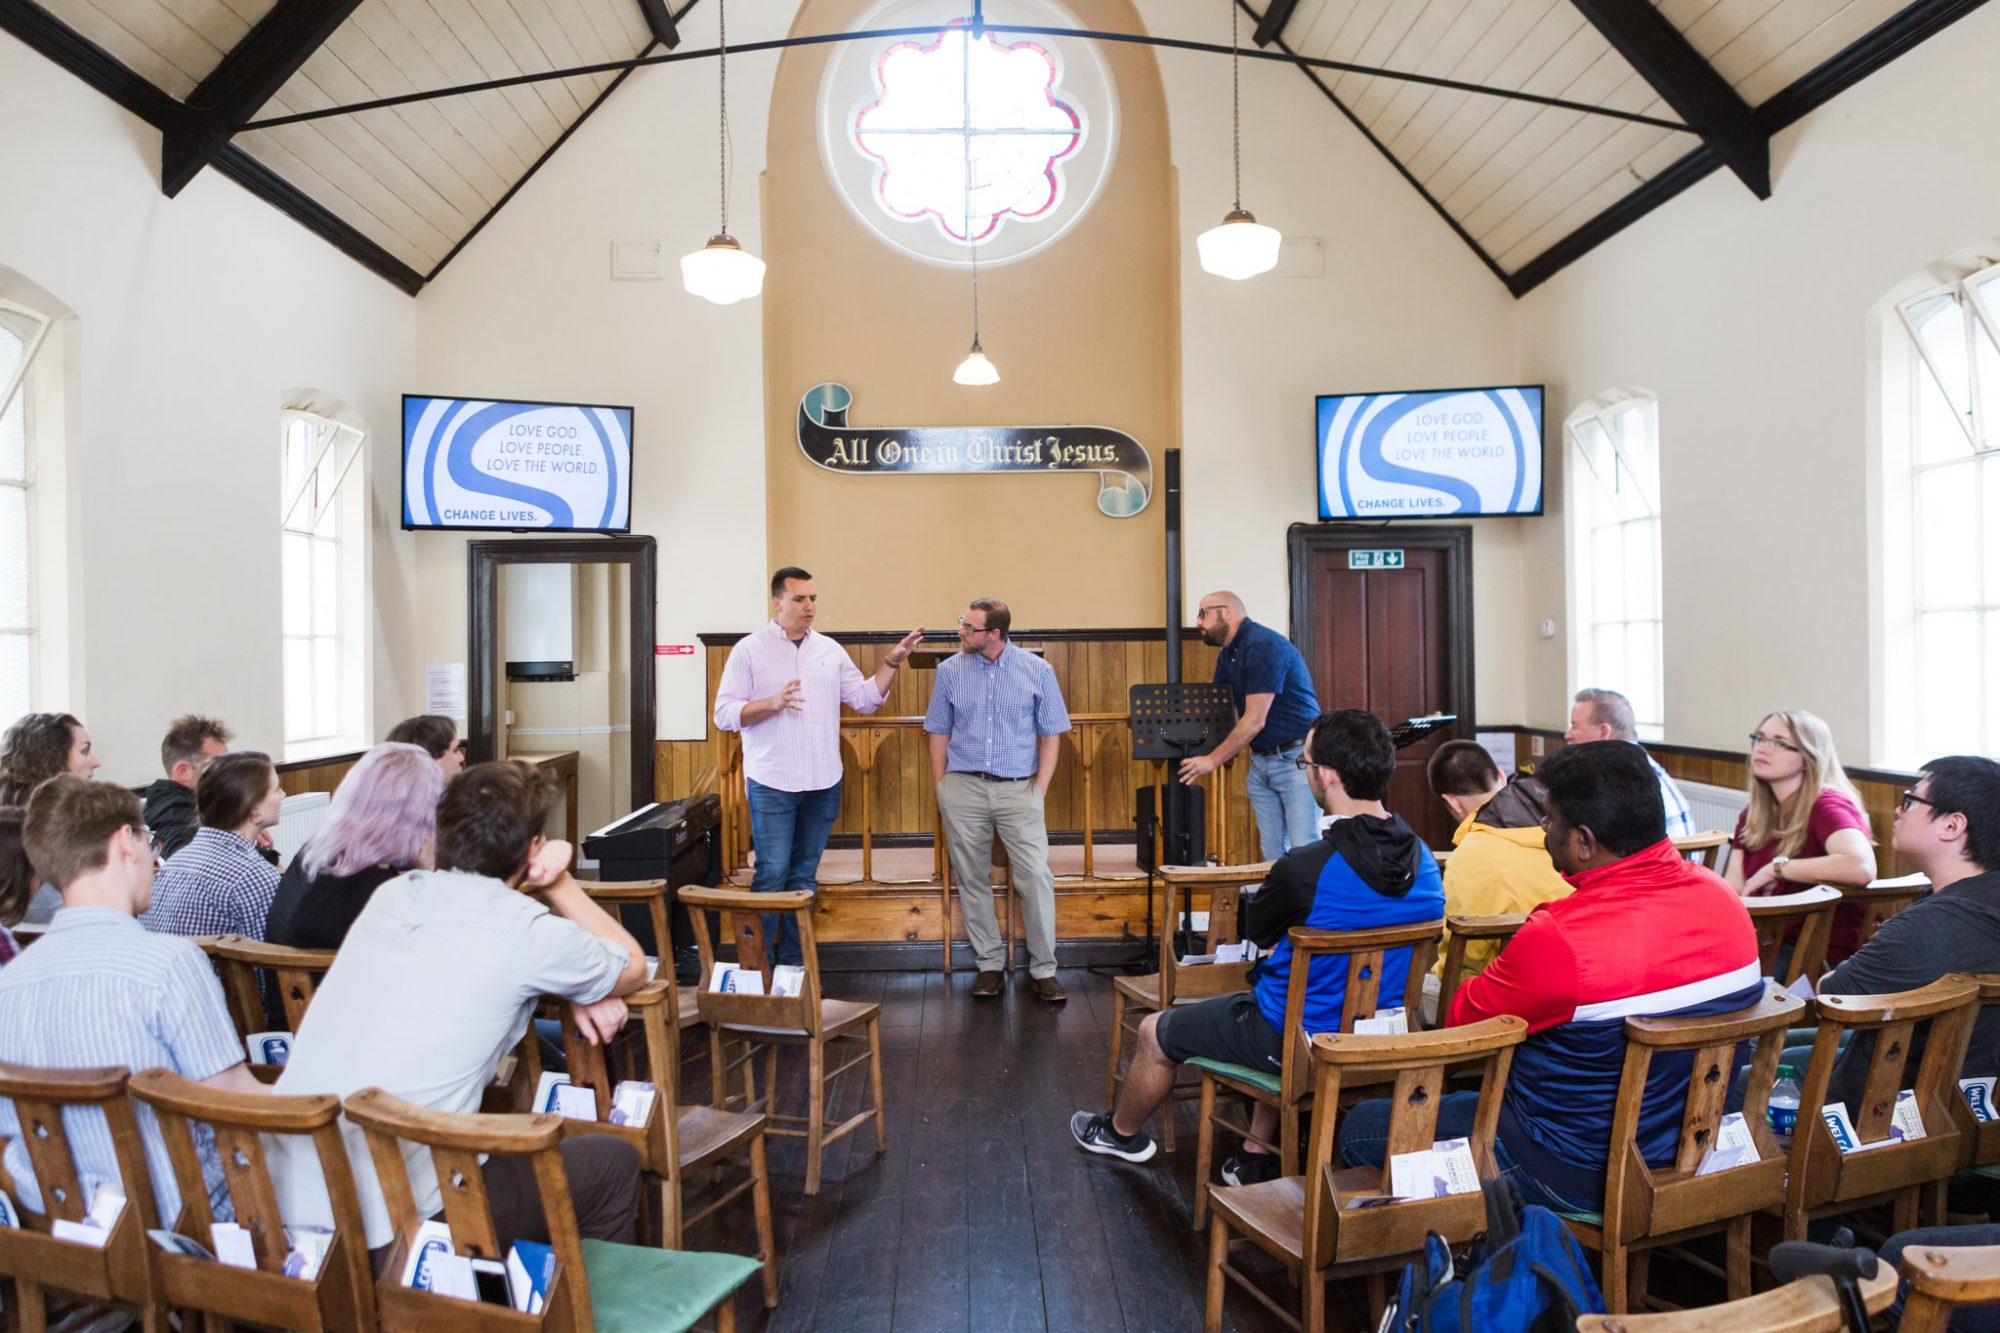 Southside Baptist Church | The Oxford Study Tour (credit: Rebecca Hankins)